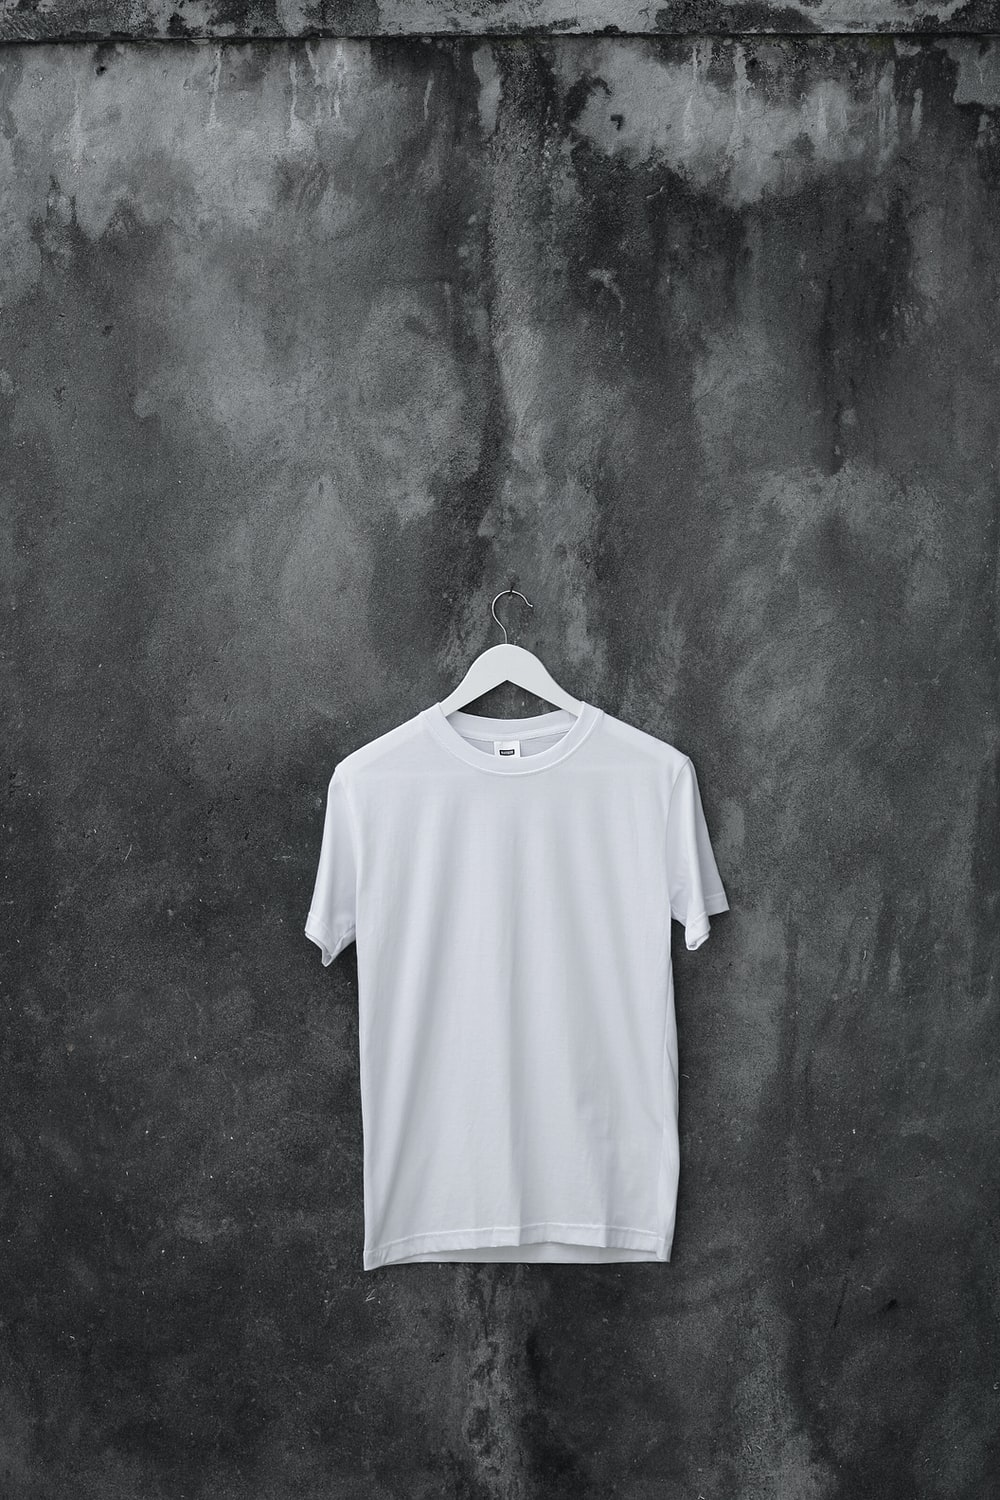 20 T Shirt Pictures Hq Download Free Images Stock Photos On Unsplash